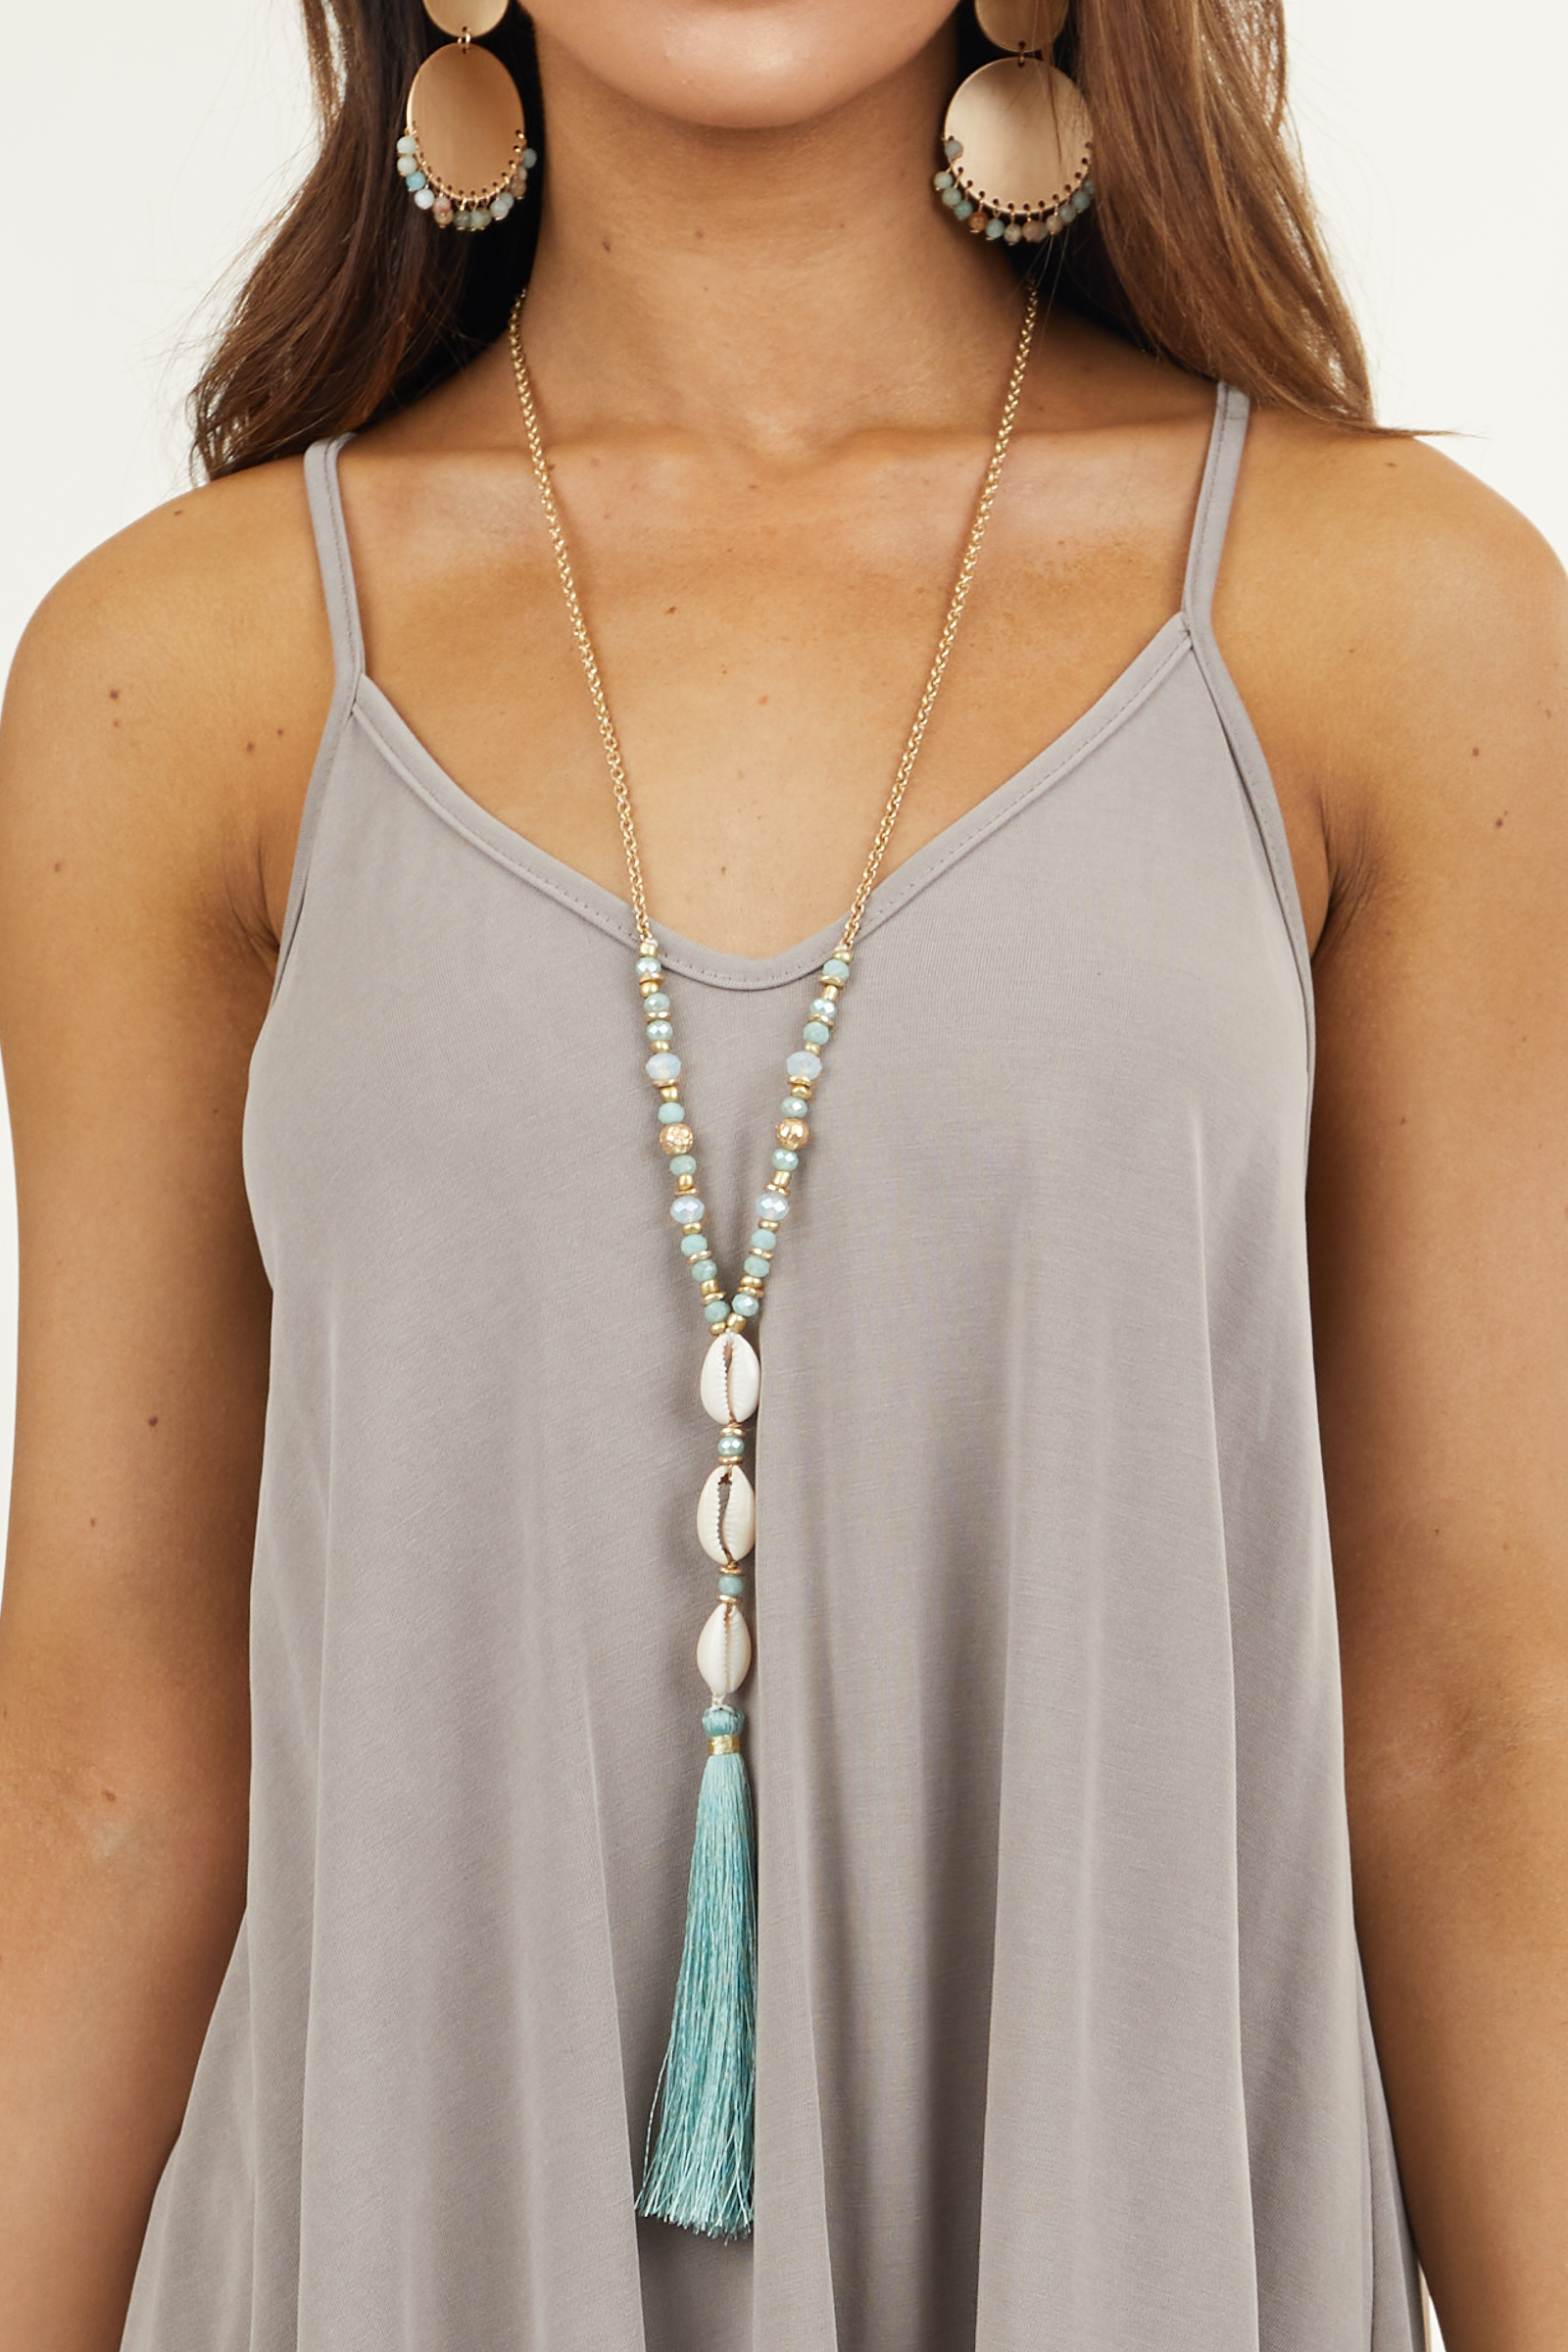 Gold and Mint Beaded Necklace with Shell and Tassel Details